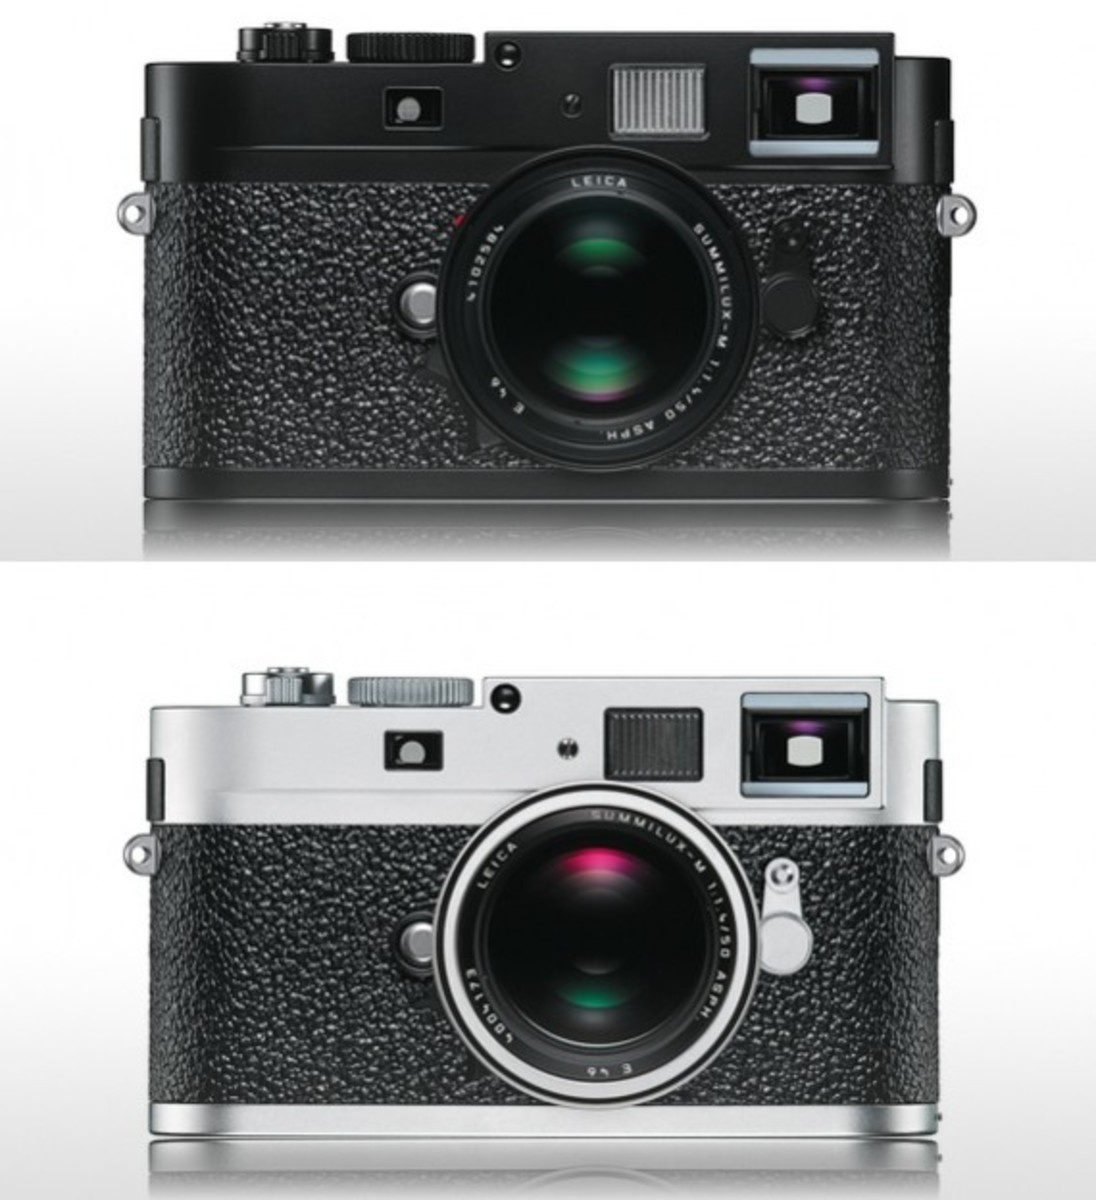 leica-m9-p-full-frame-digital-camera-00